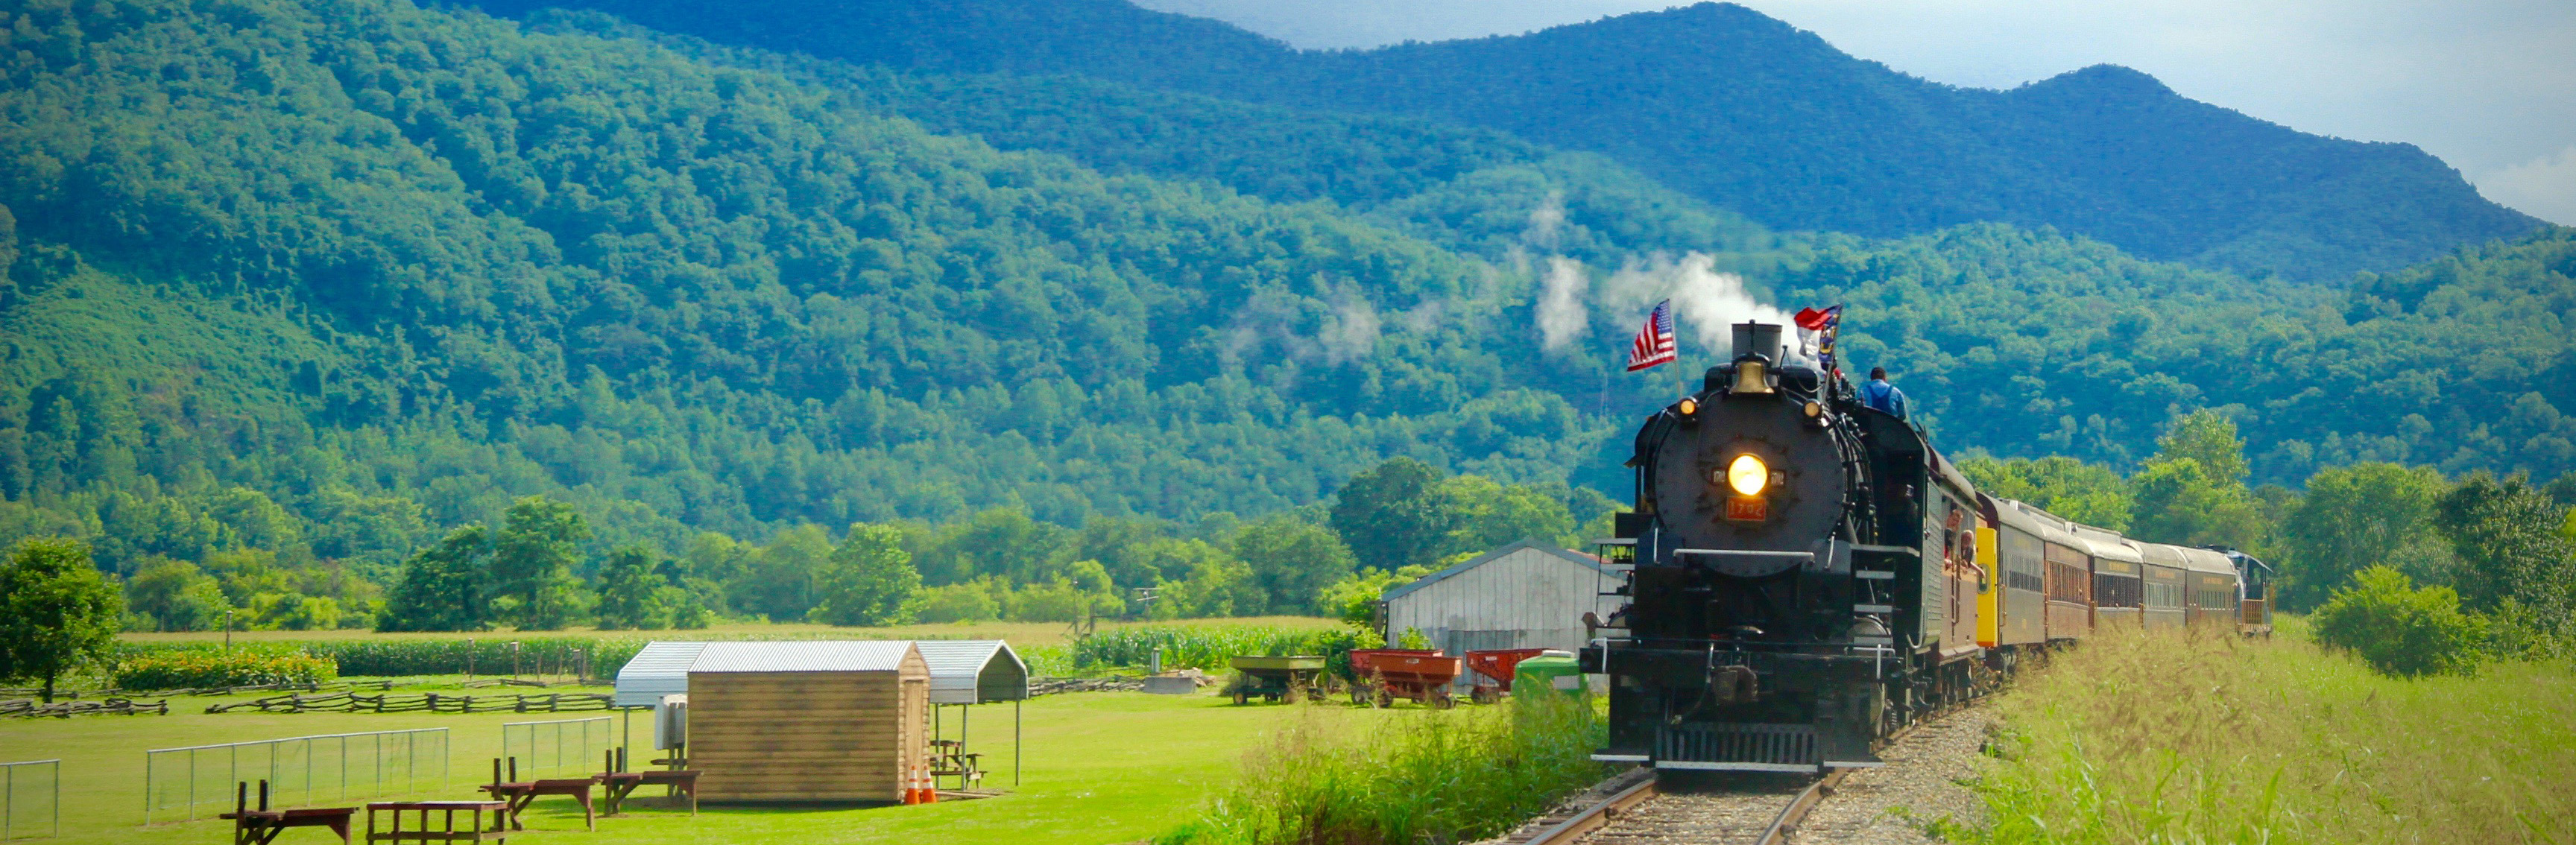 Photo of Great Smoky Mountains Railroad